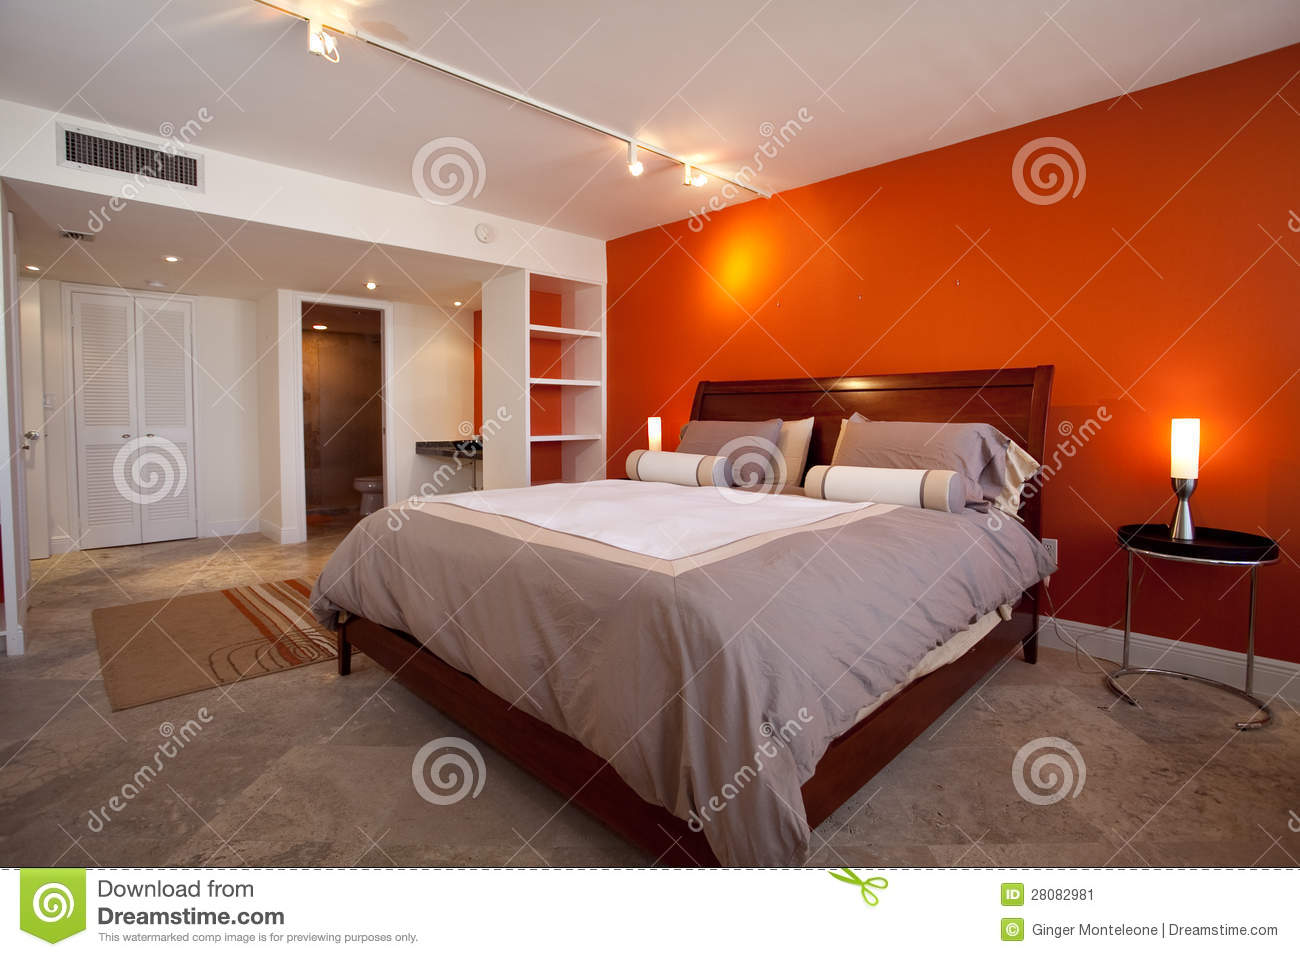 schlafzimmer mit orange wand stockbild bild von bett k nig 28082981. Black Bedroom Furniture Sets. Home Design Ideas